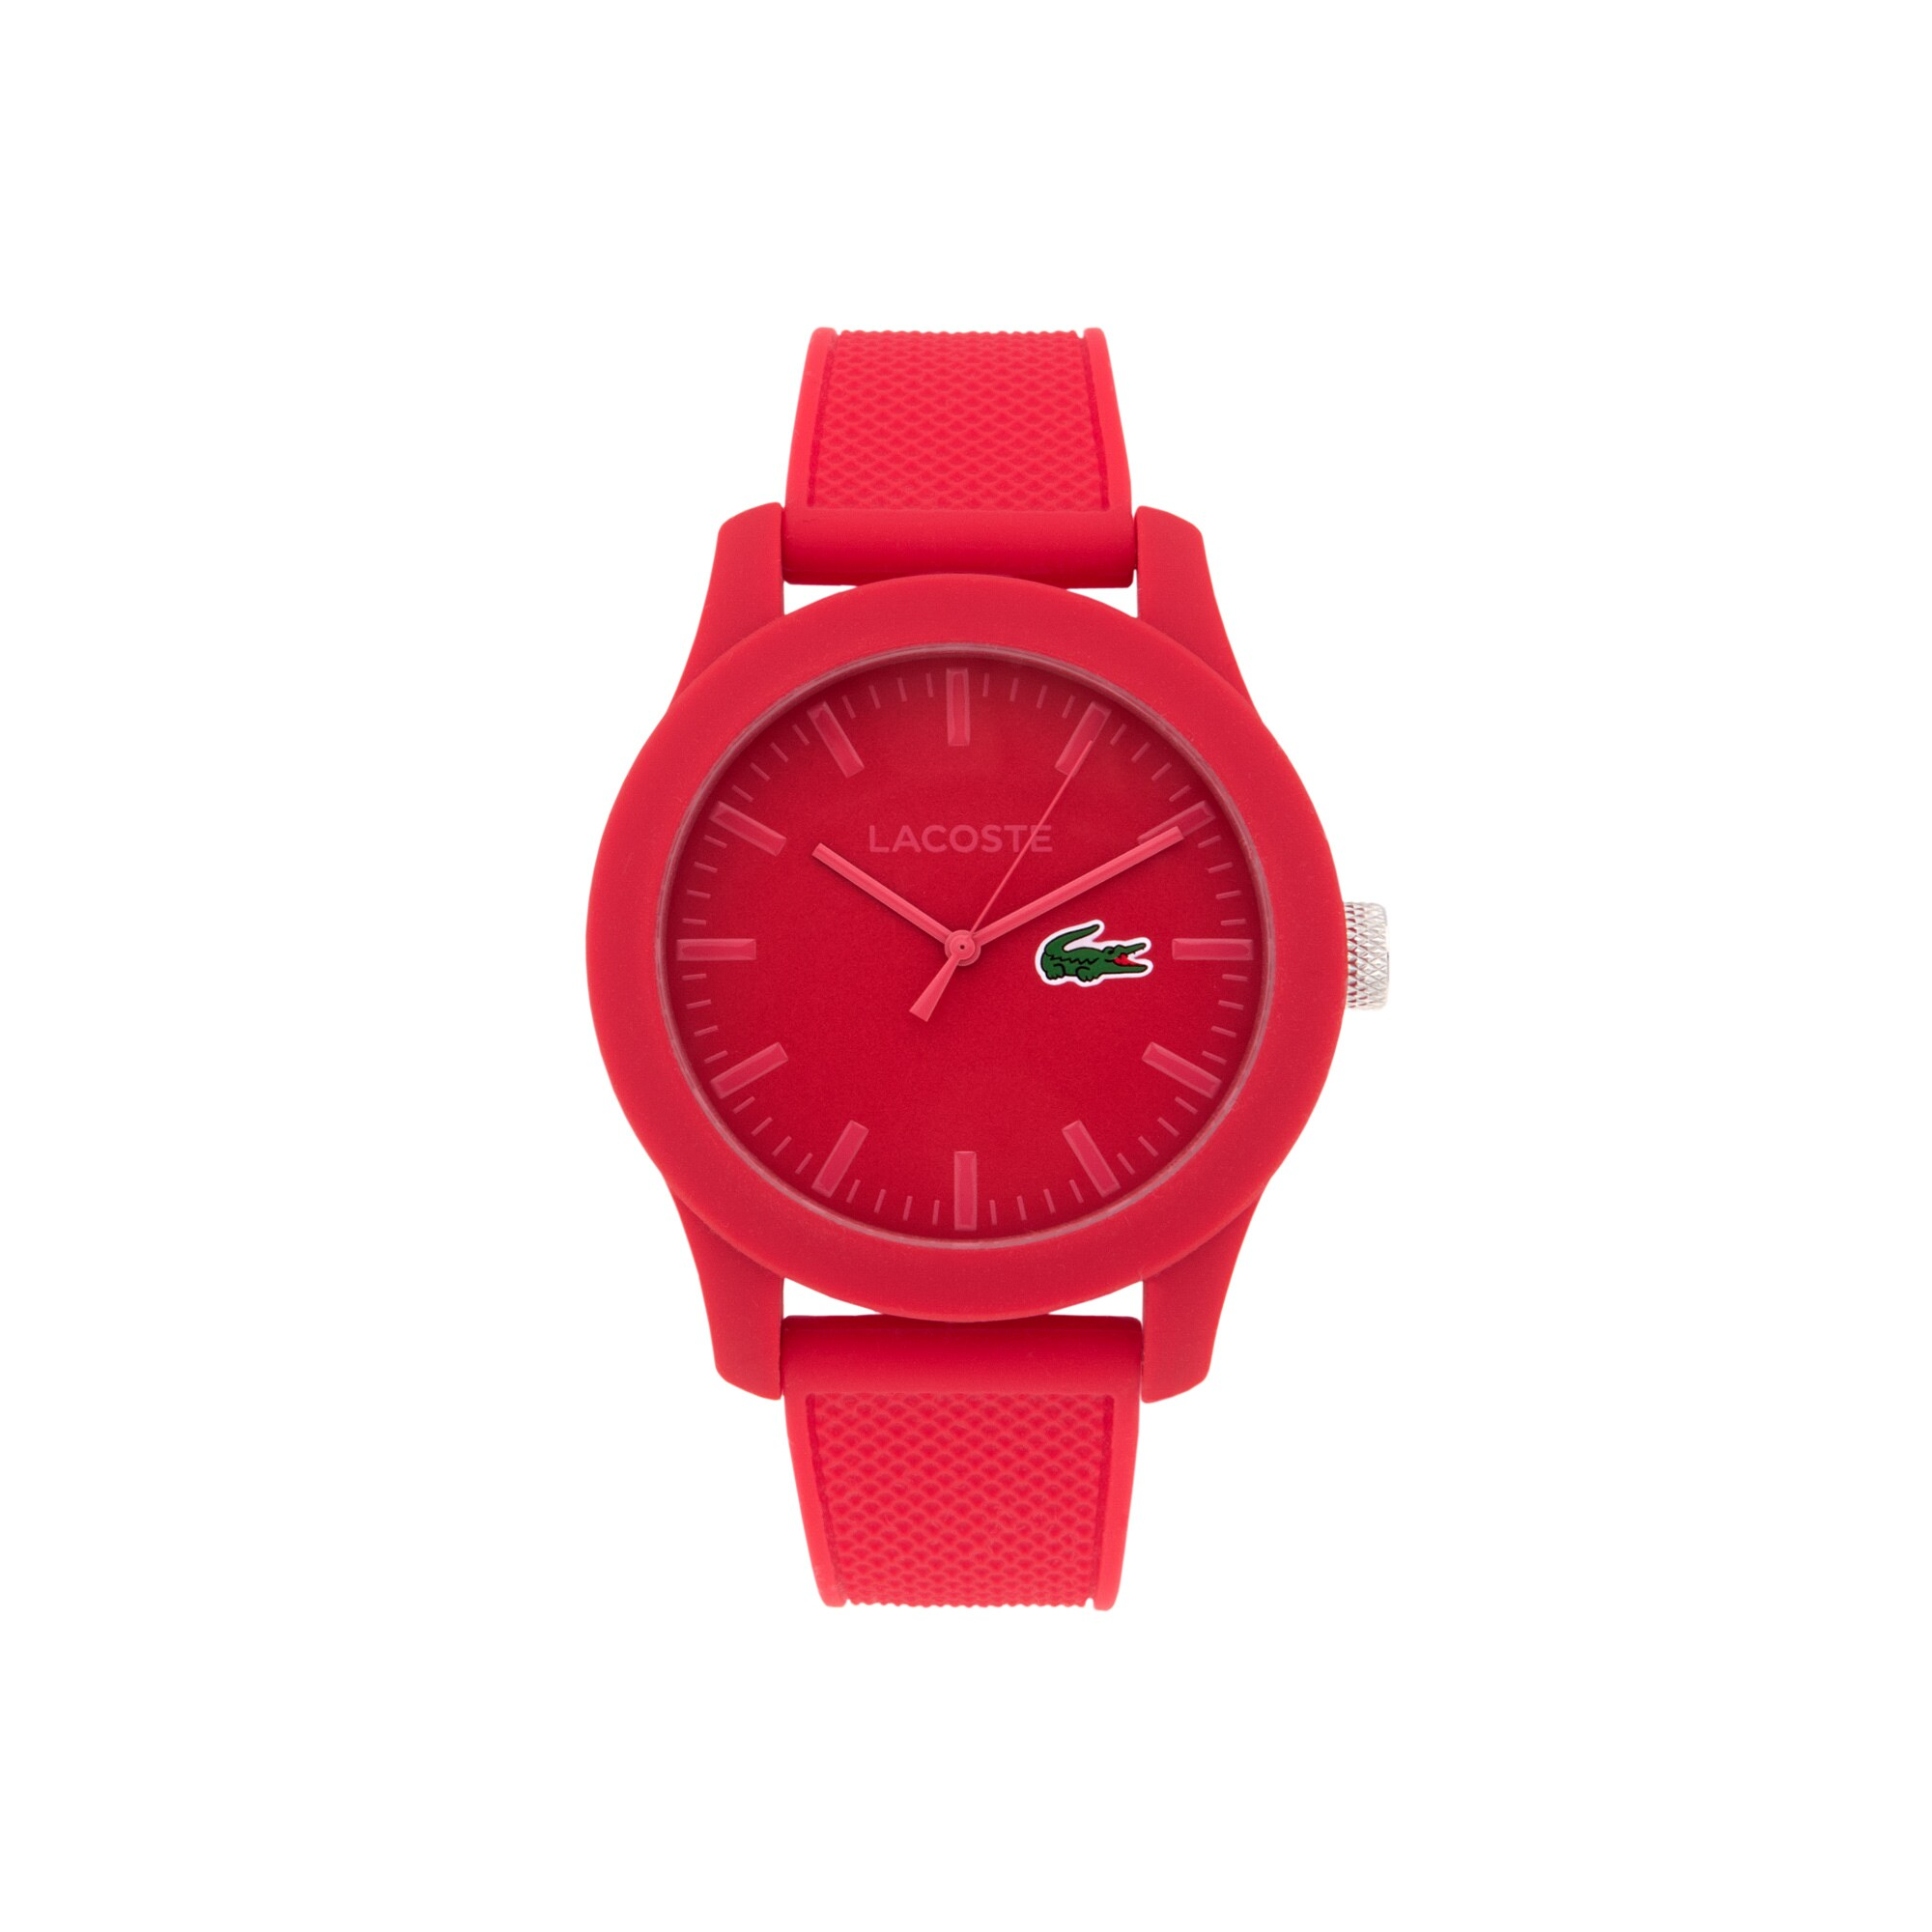 Men's Lacoste 12.12 Watch with Red Silicone Strap